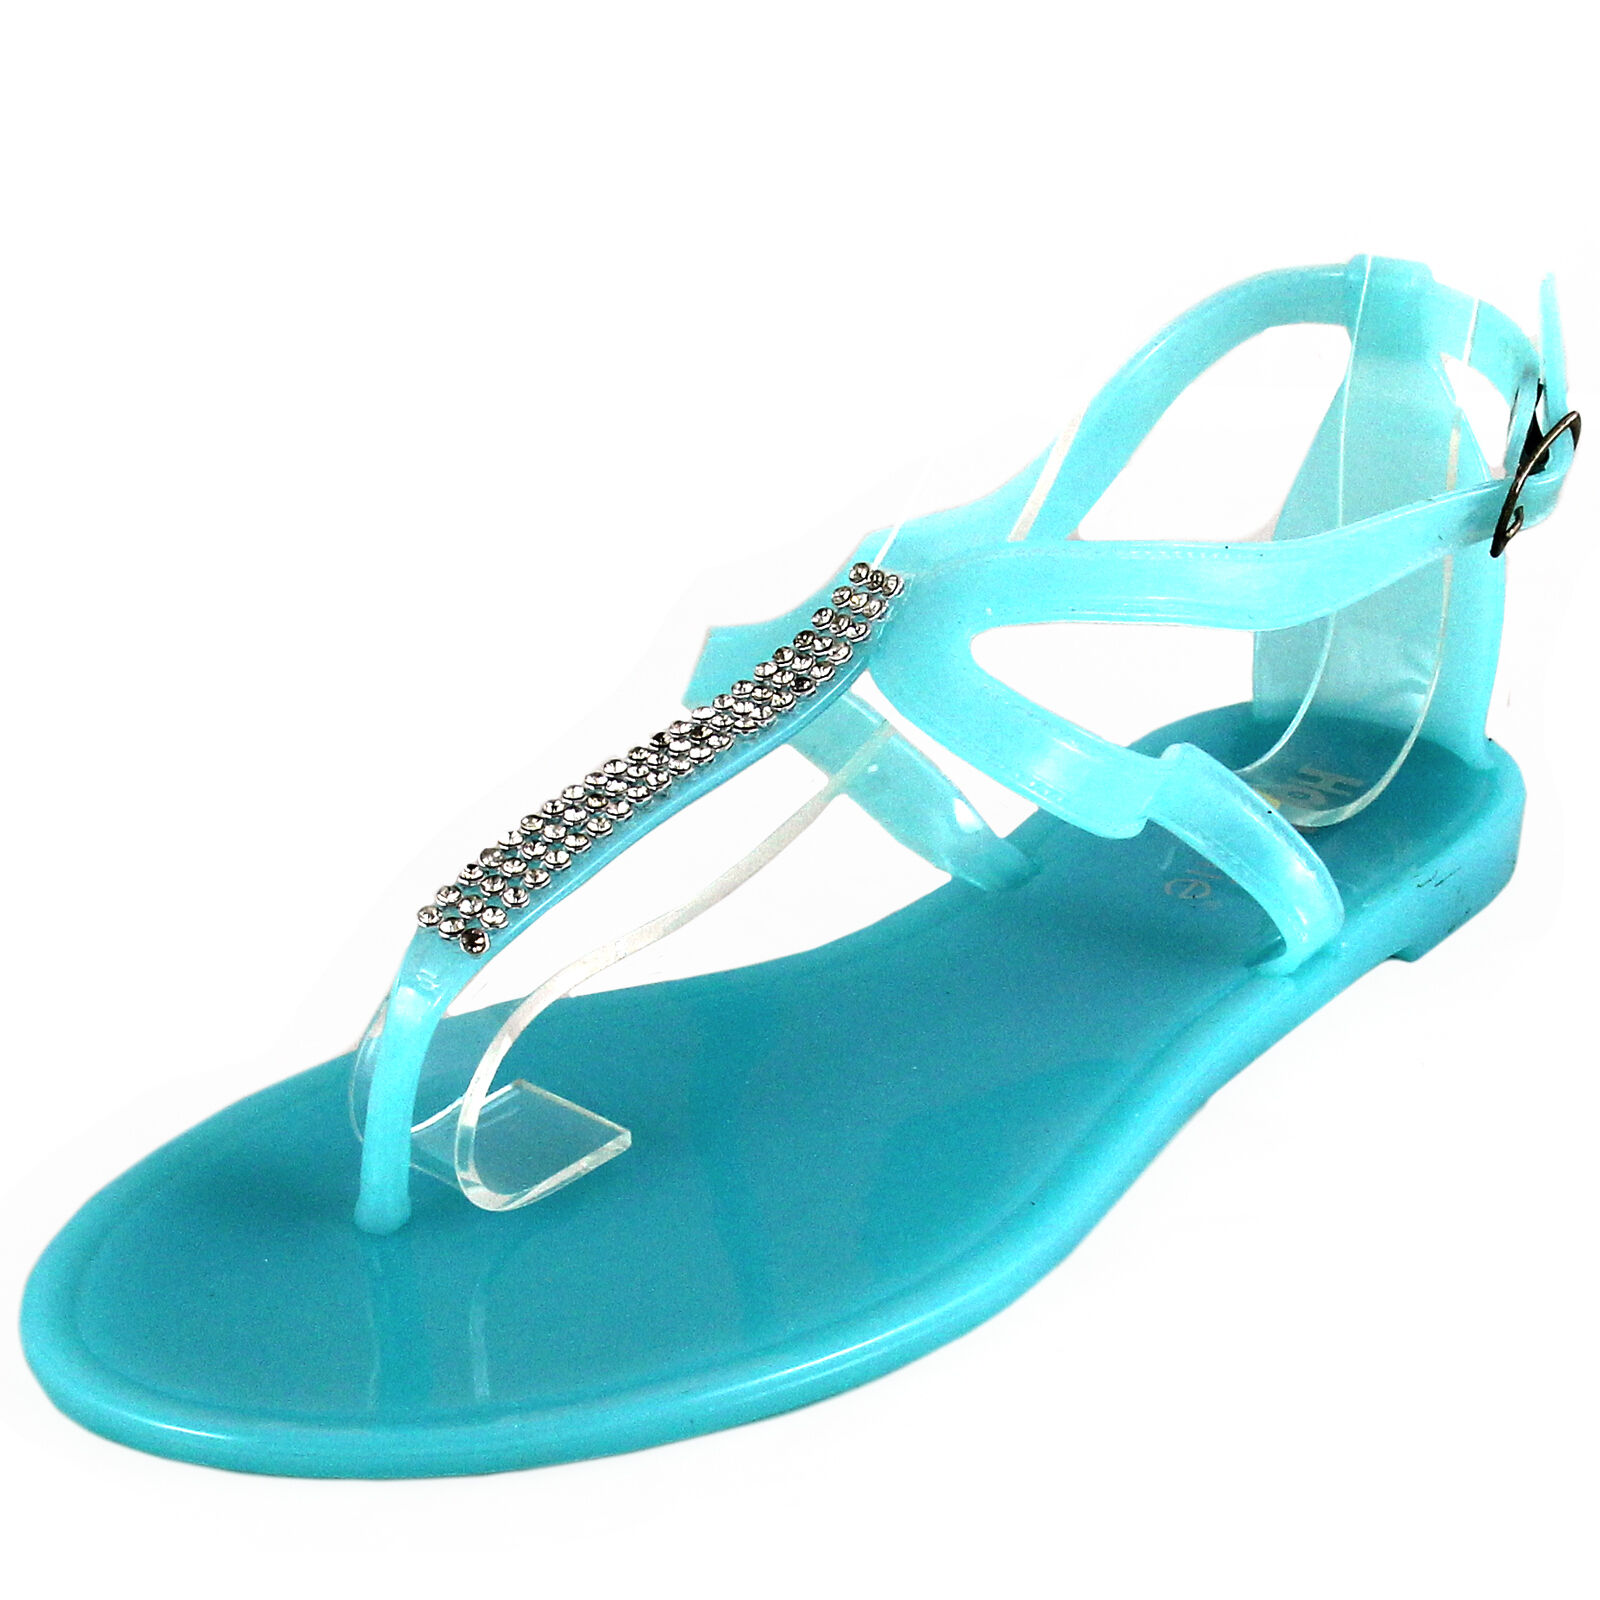 New toe women's shoes fashion jelly sandals t strap open toe New casual summer aqua blue b6f984